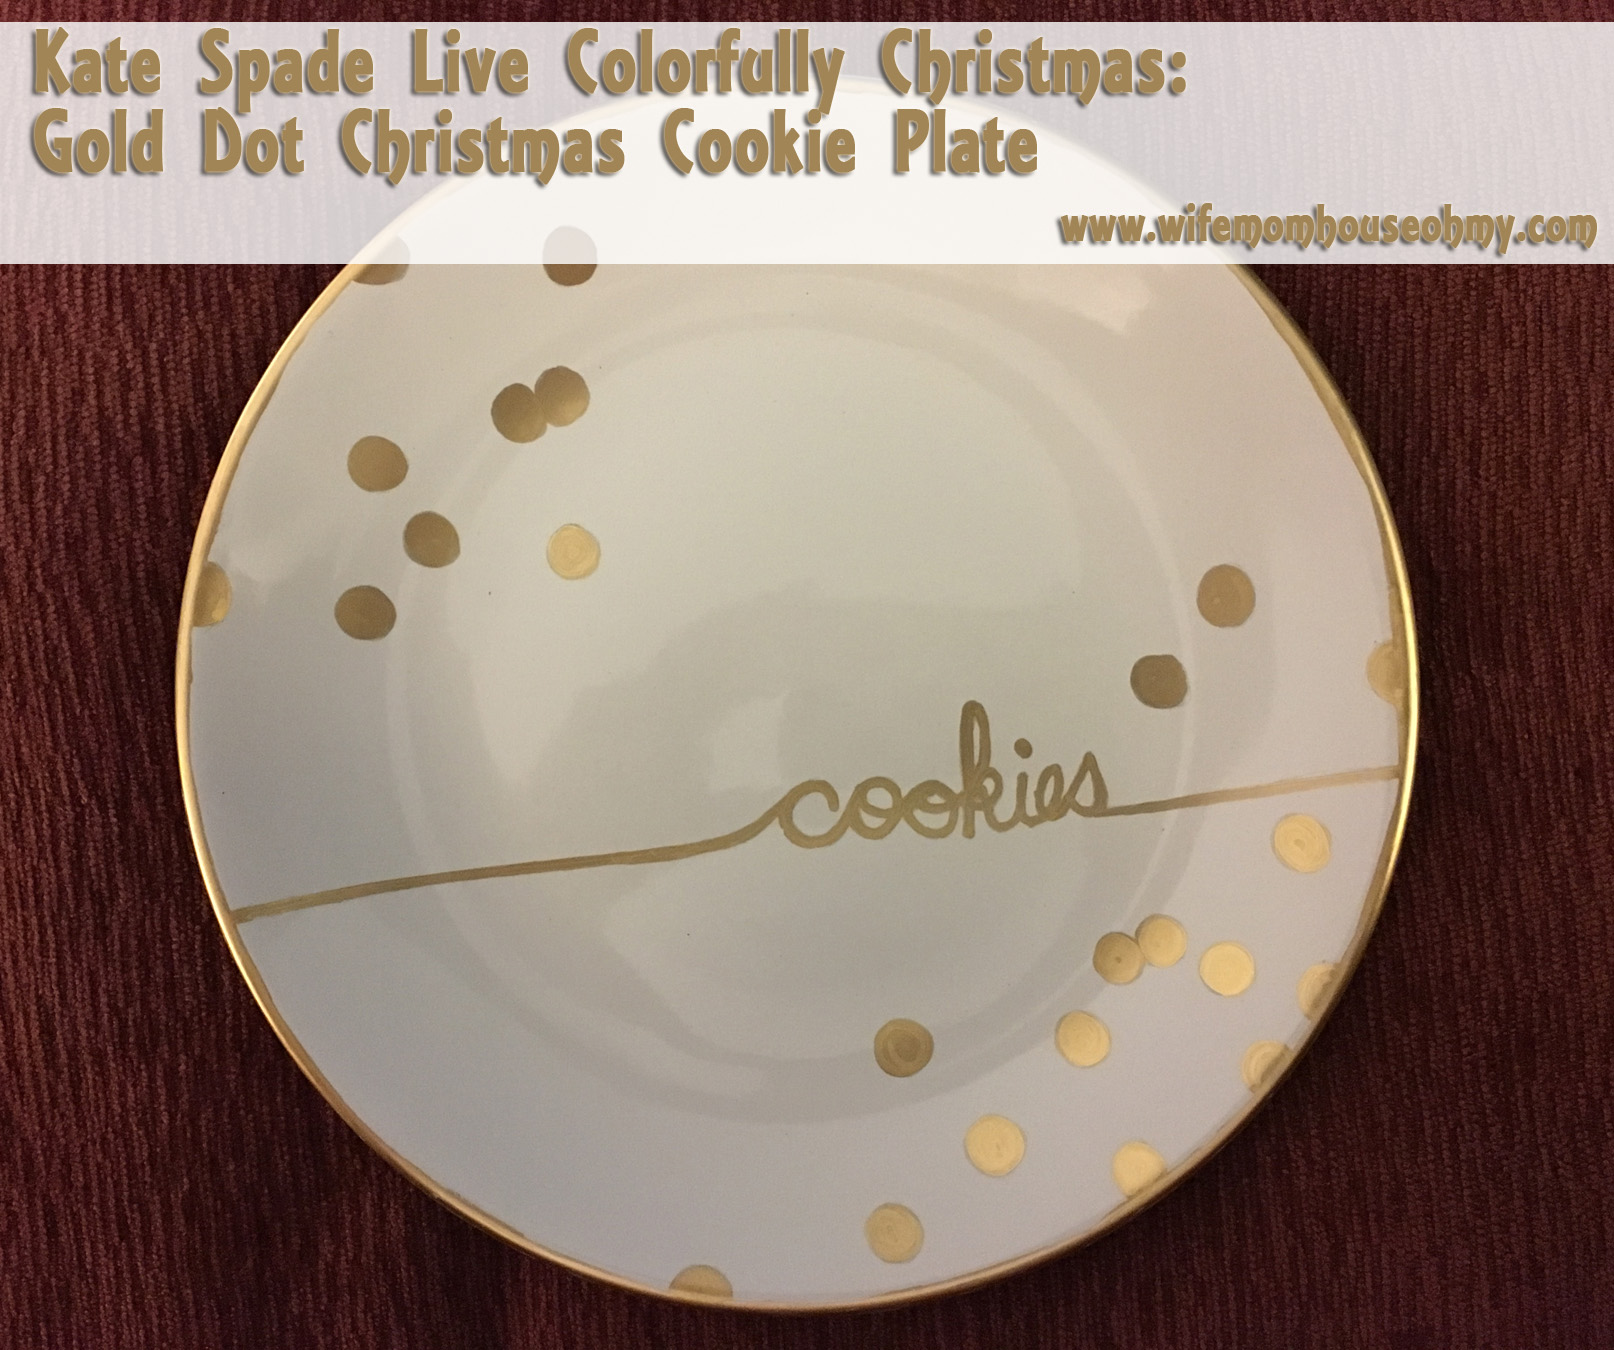 Kate Spade Live Colorfully Christmas: Gold Dot Christmas Cookie Plate |